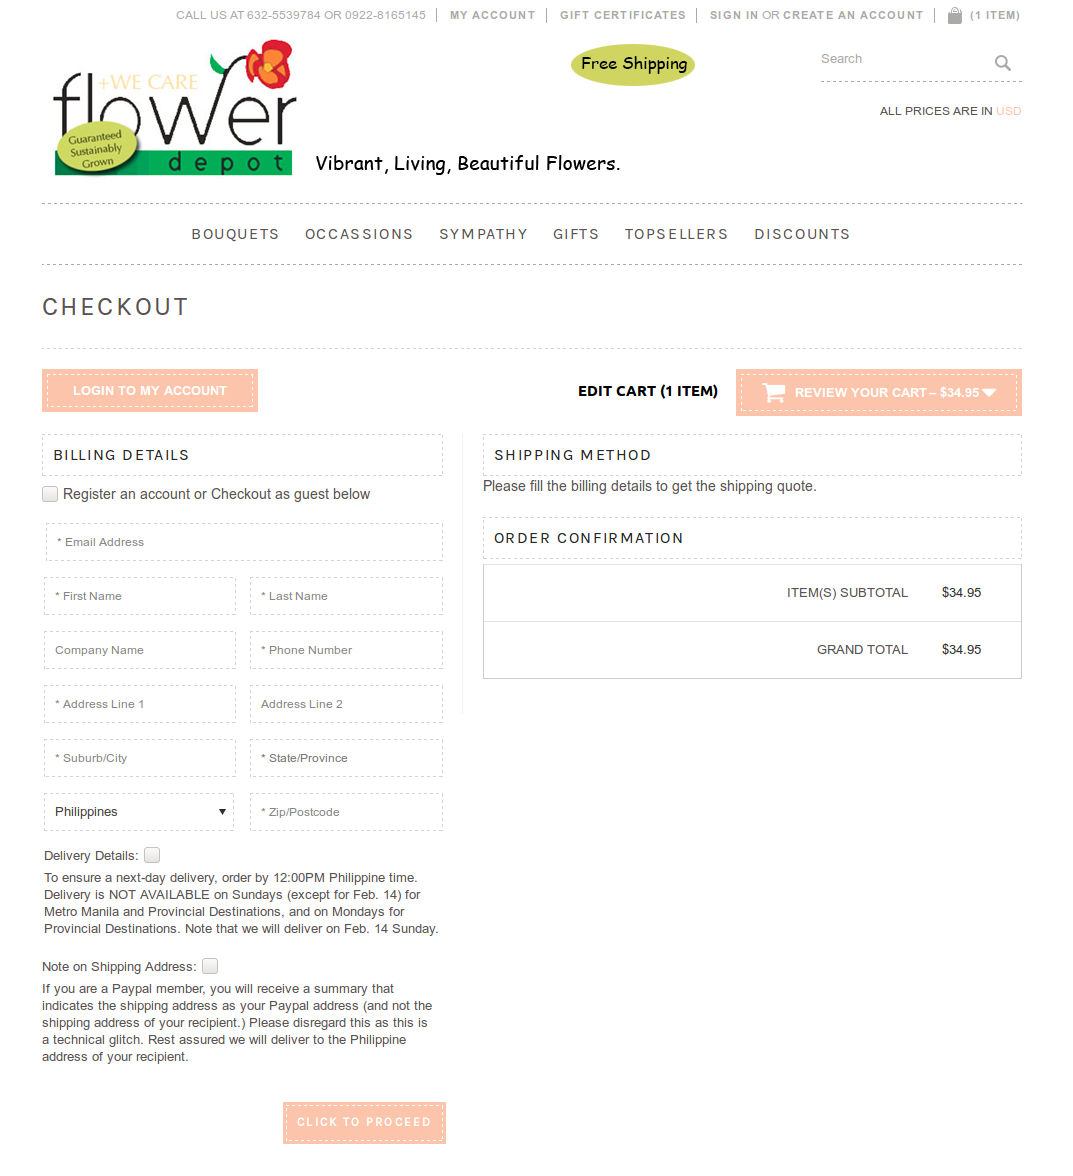 Bigcommerce One Step Checkout In flowerdeport